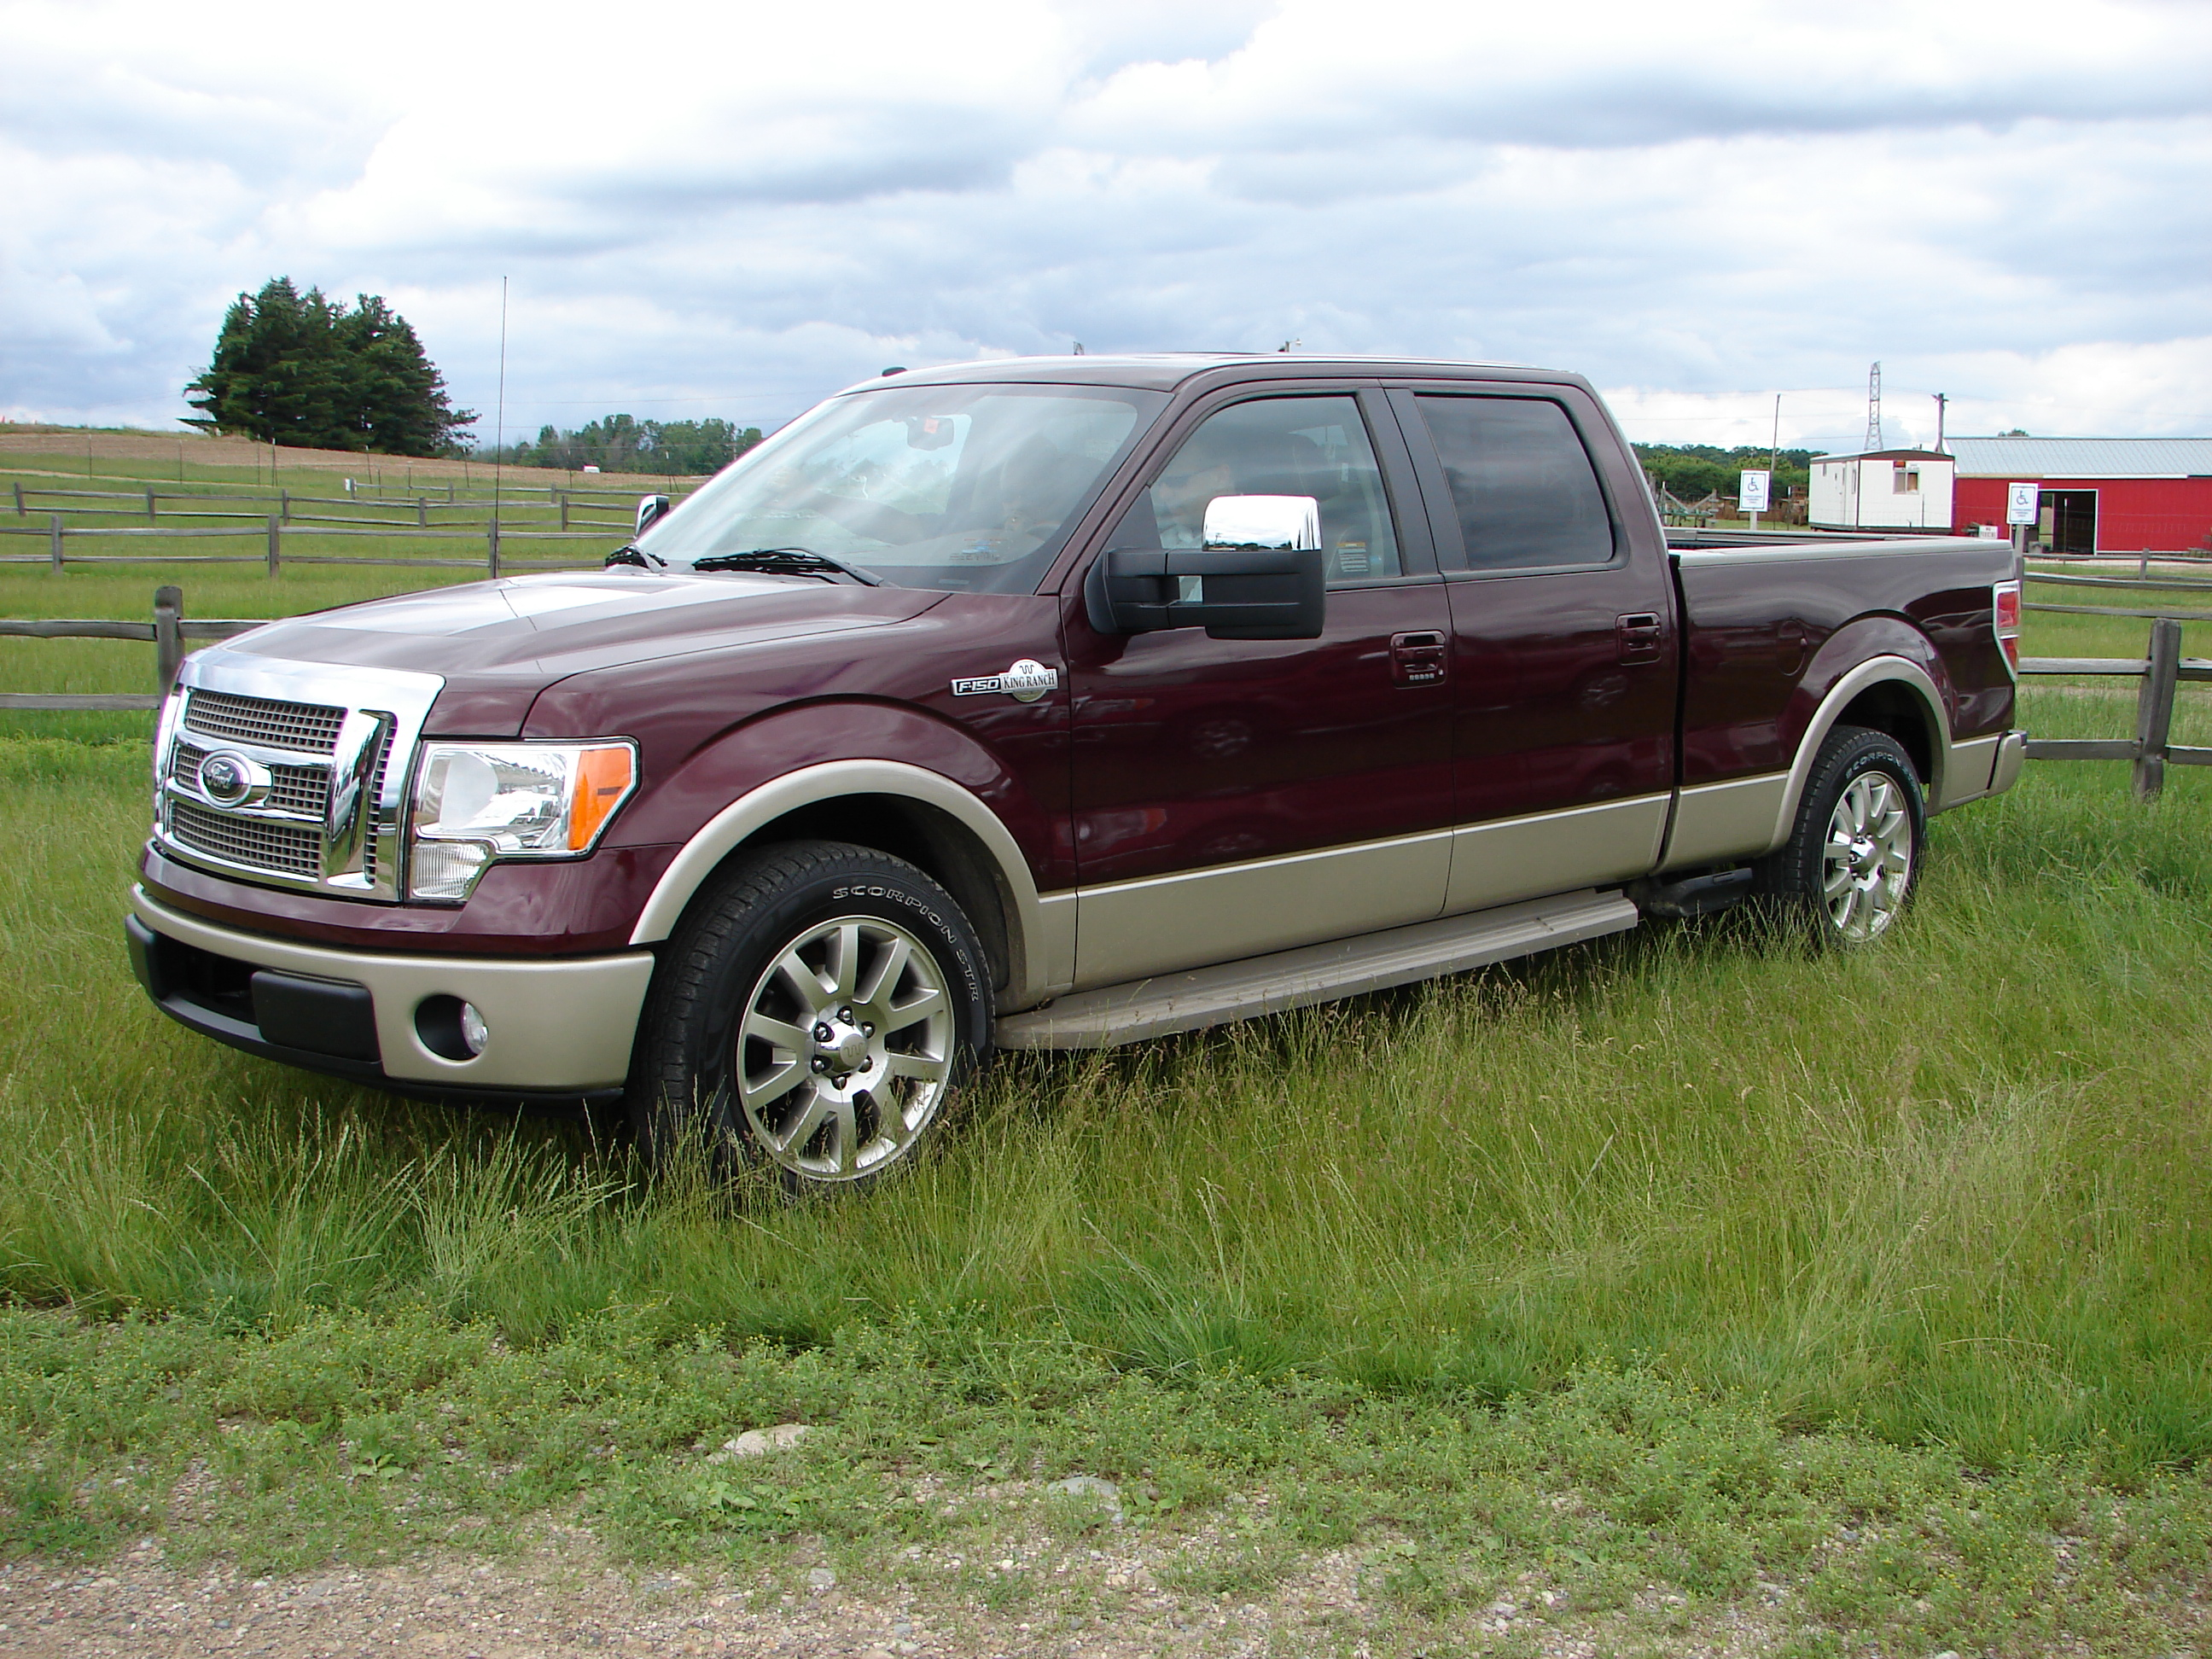 Ford 2009 F150 First Review Welcome To Fuel Filter The New Is Part Of Trend 1 2 Trailering With Optional Integrated Trailer Brake Controller Similar Option Super Duty